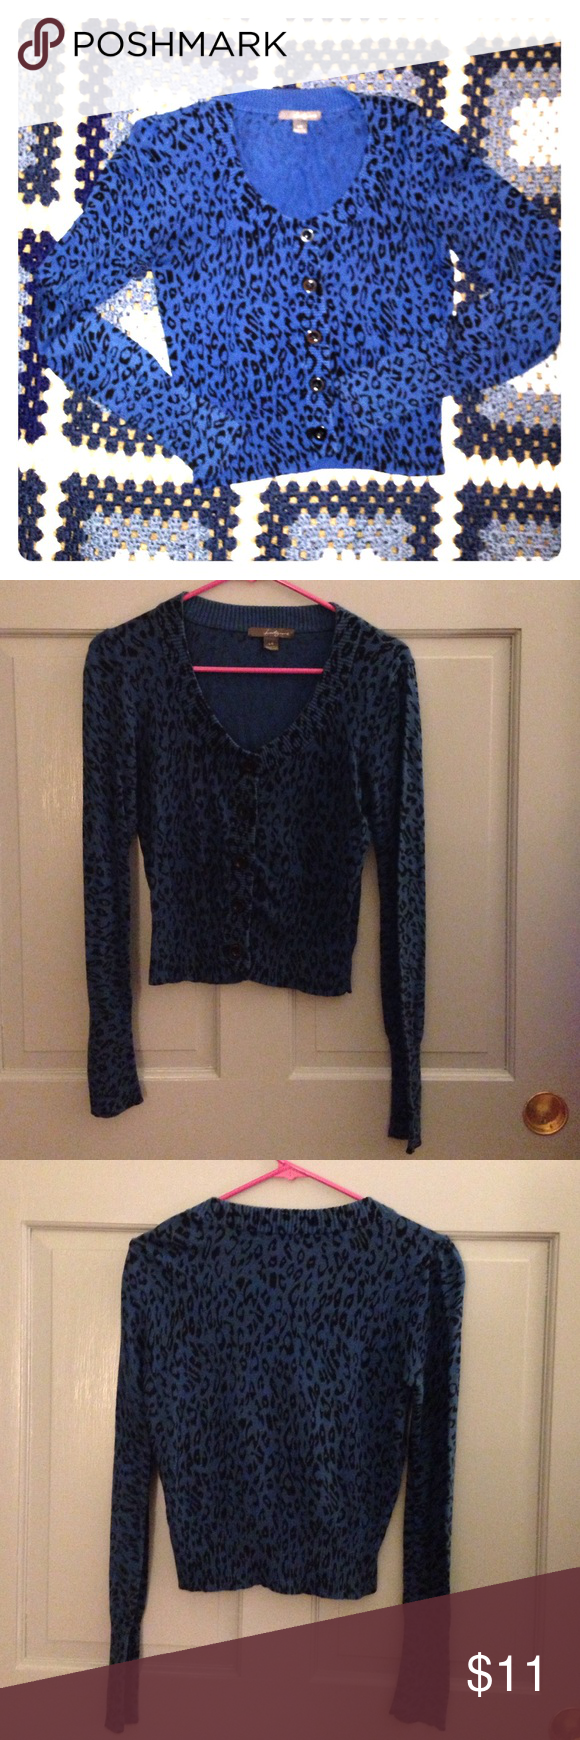 Forever 21 leopard print cardigan | Sweater cardigan, Print... and ...